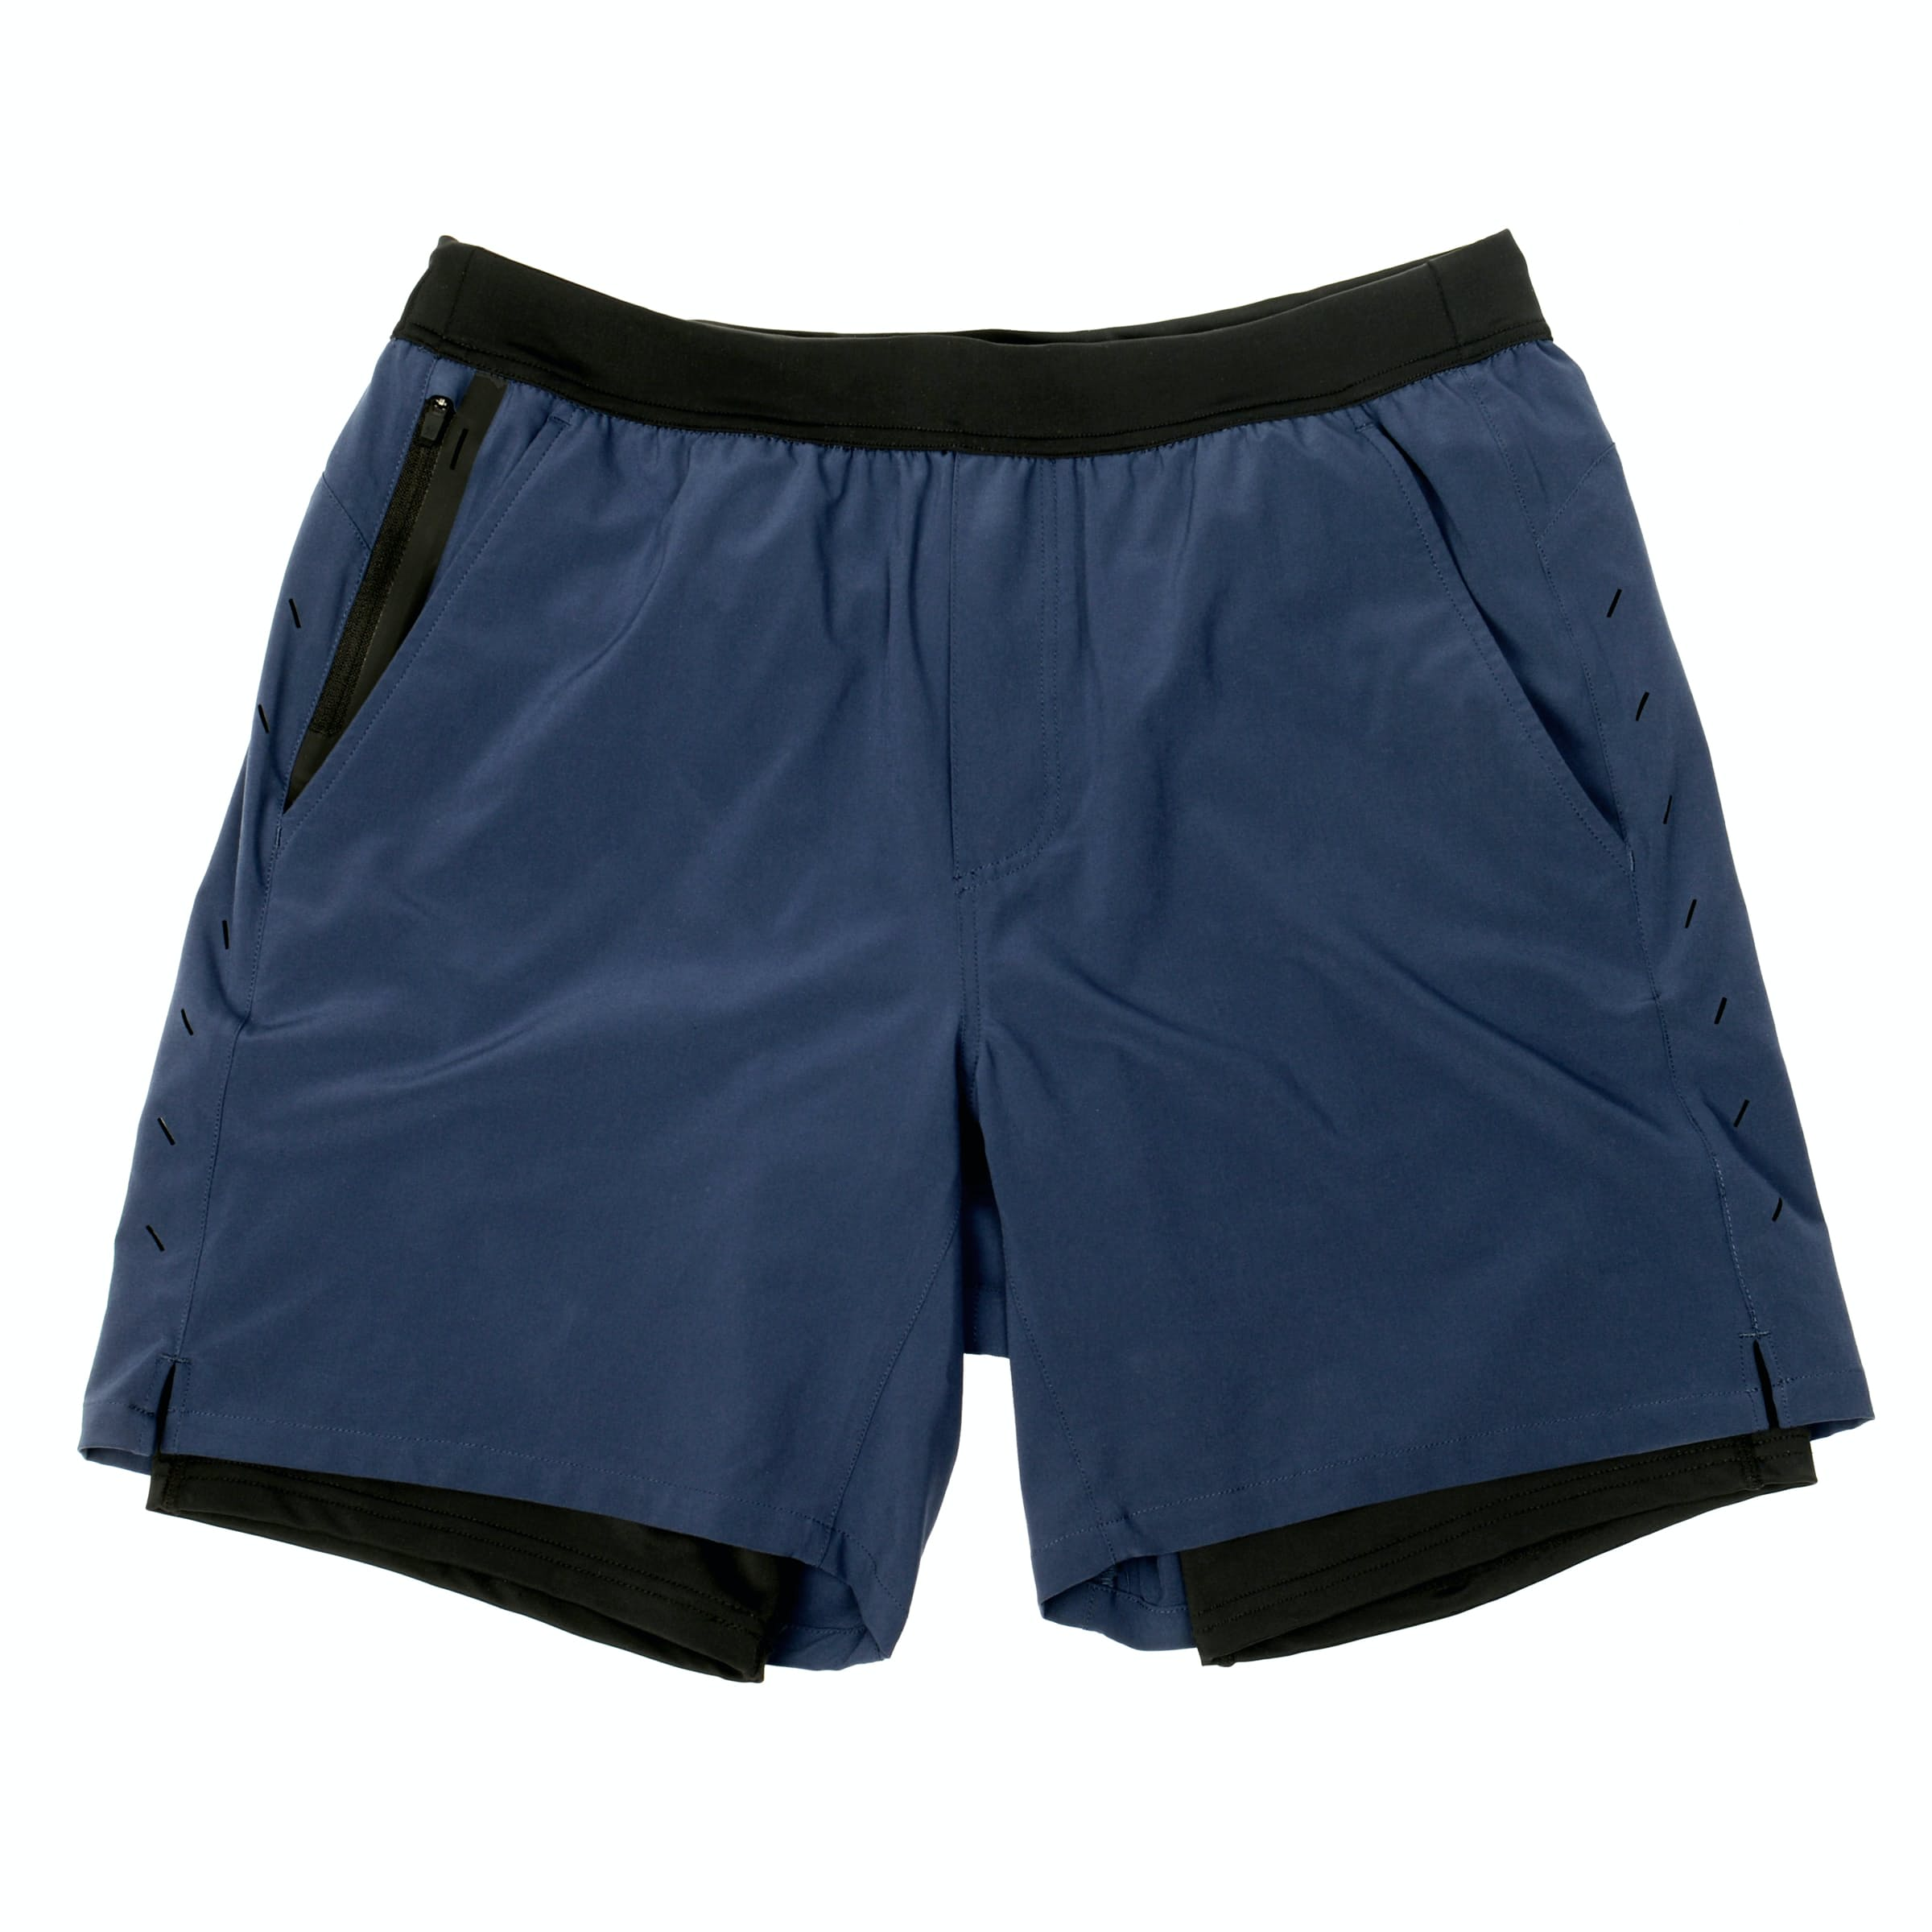 Ljjfykeeqp ten thousand interval short 7 with liner 0 original